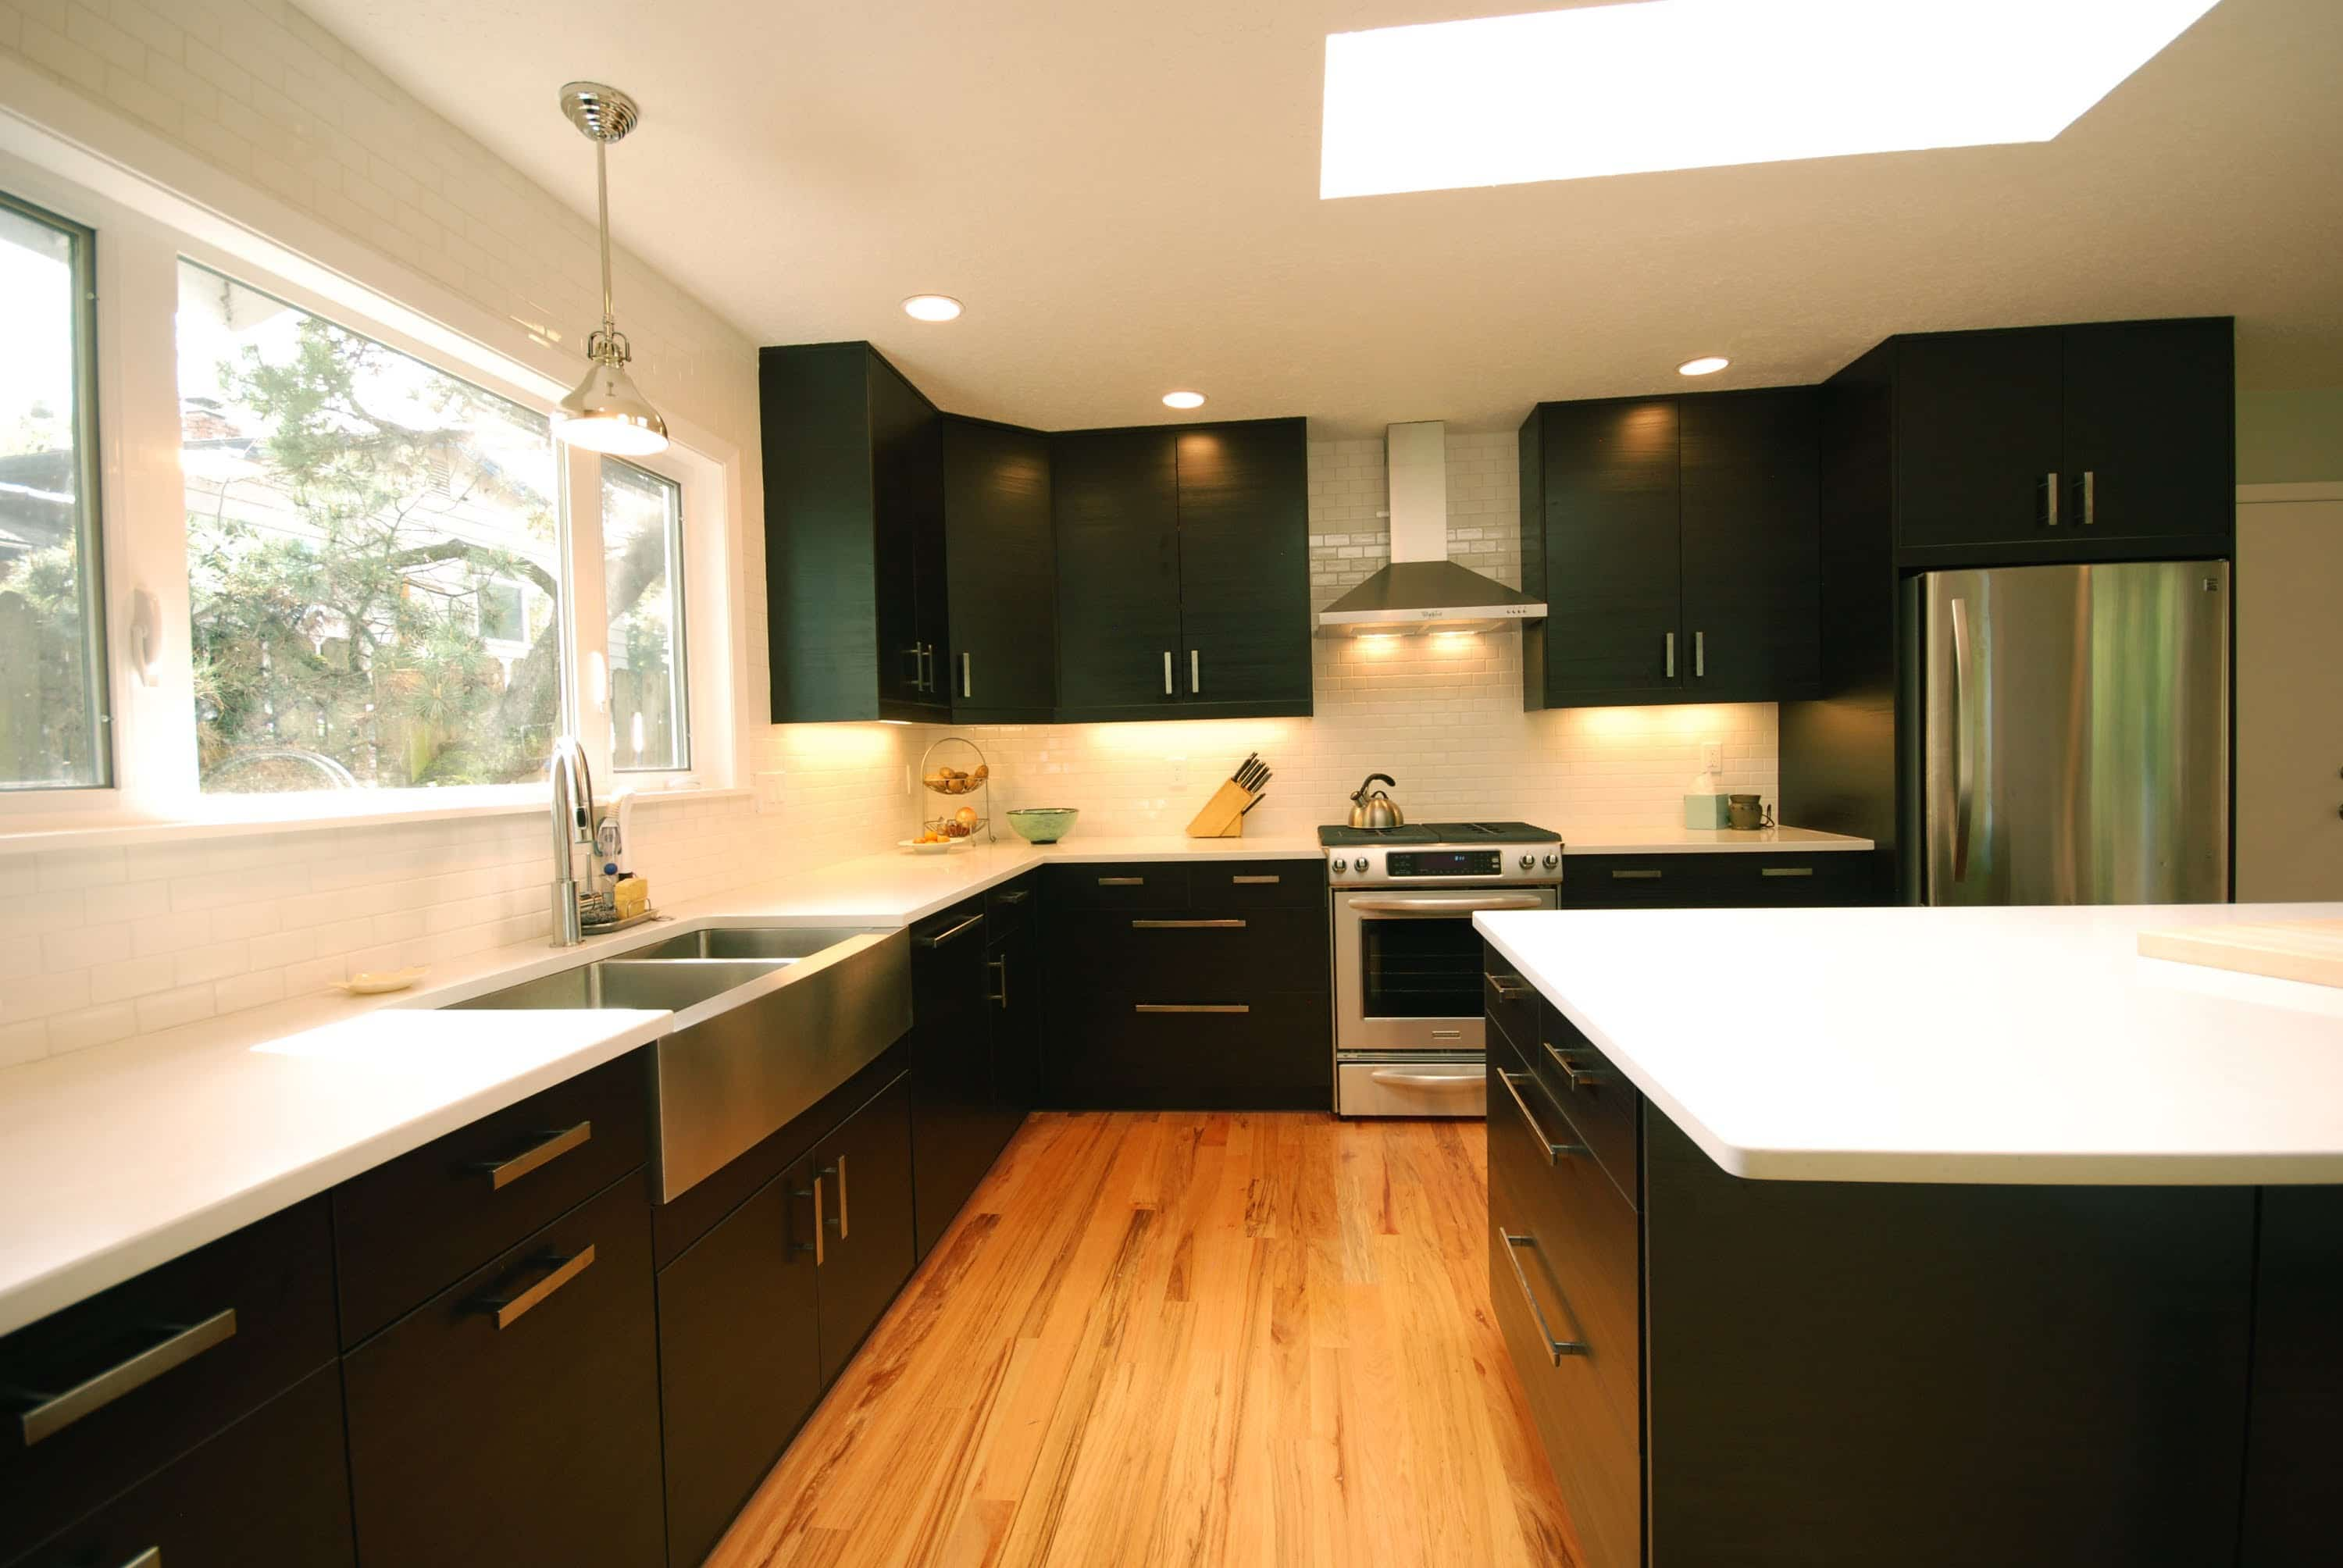 Kitchen Contractor Island Heights [Remodeling Company] 08732